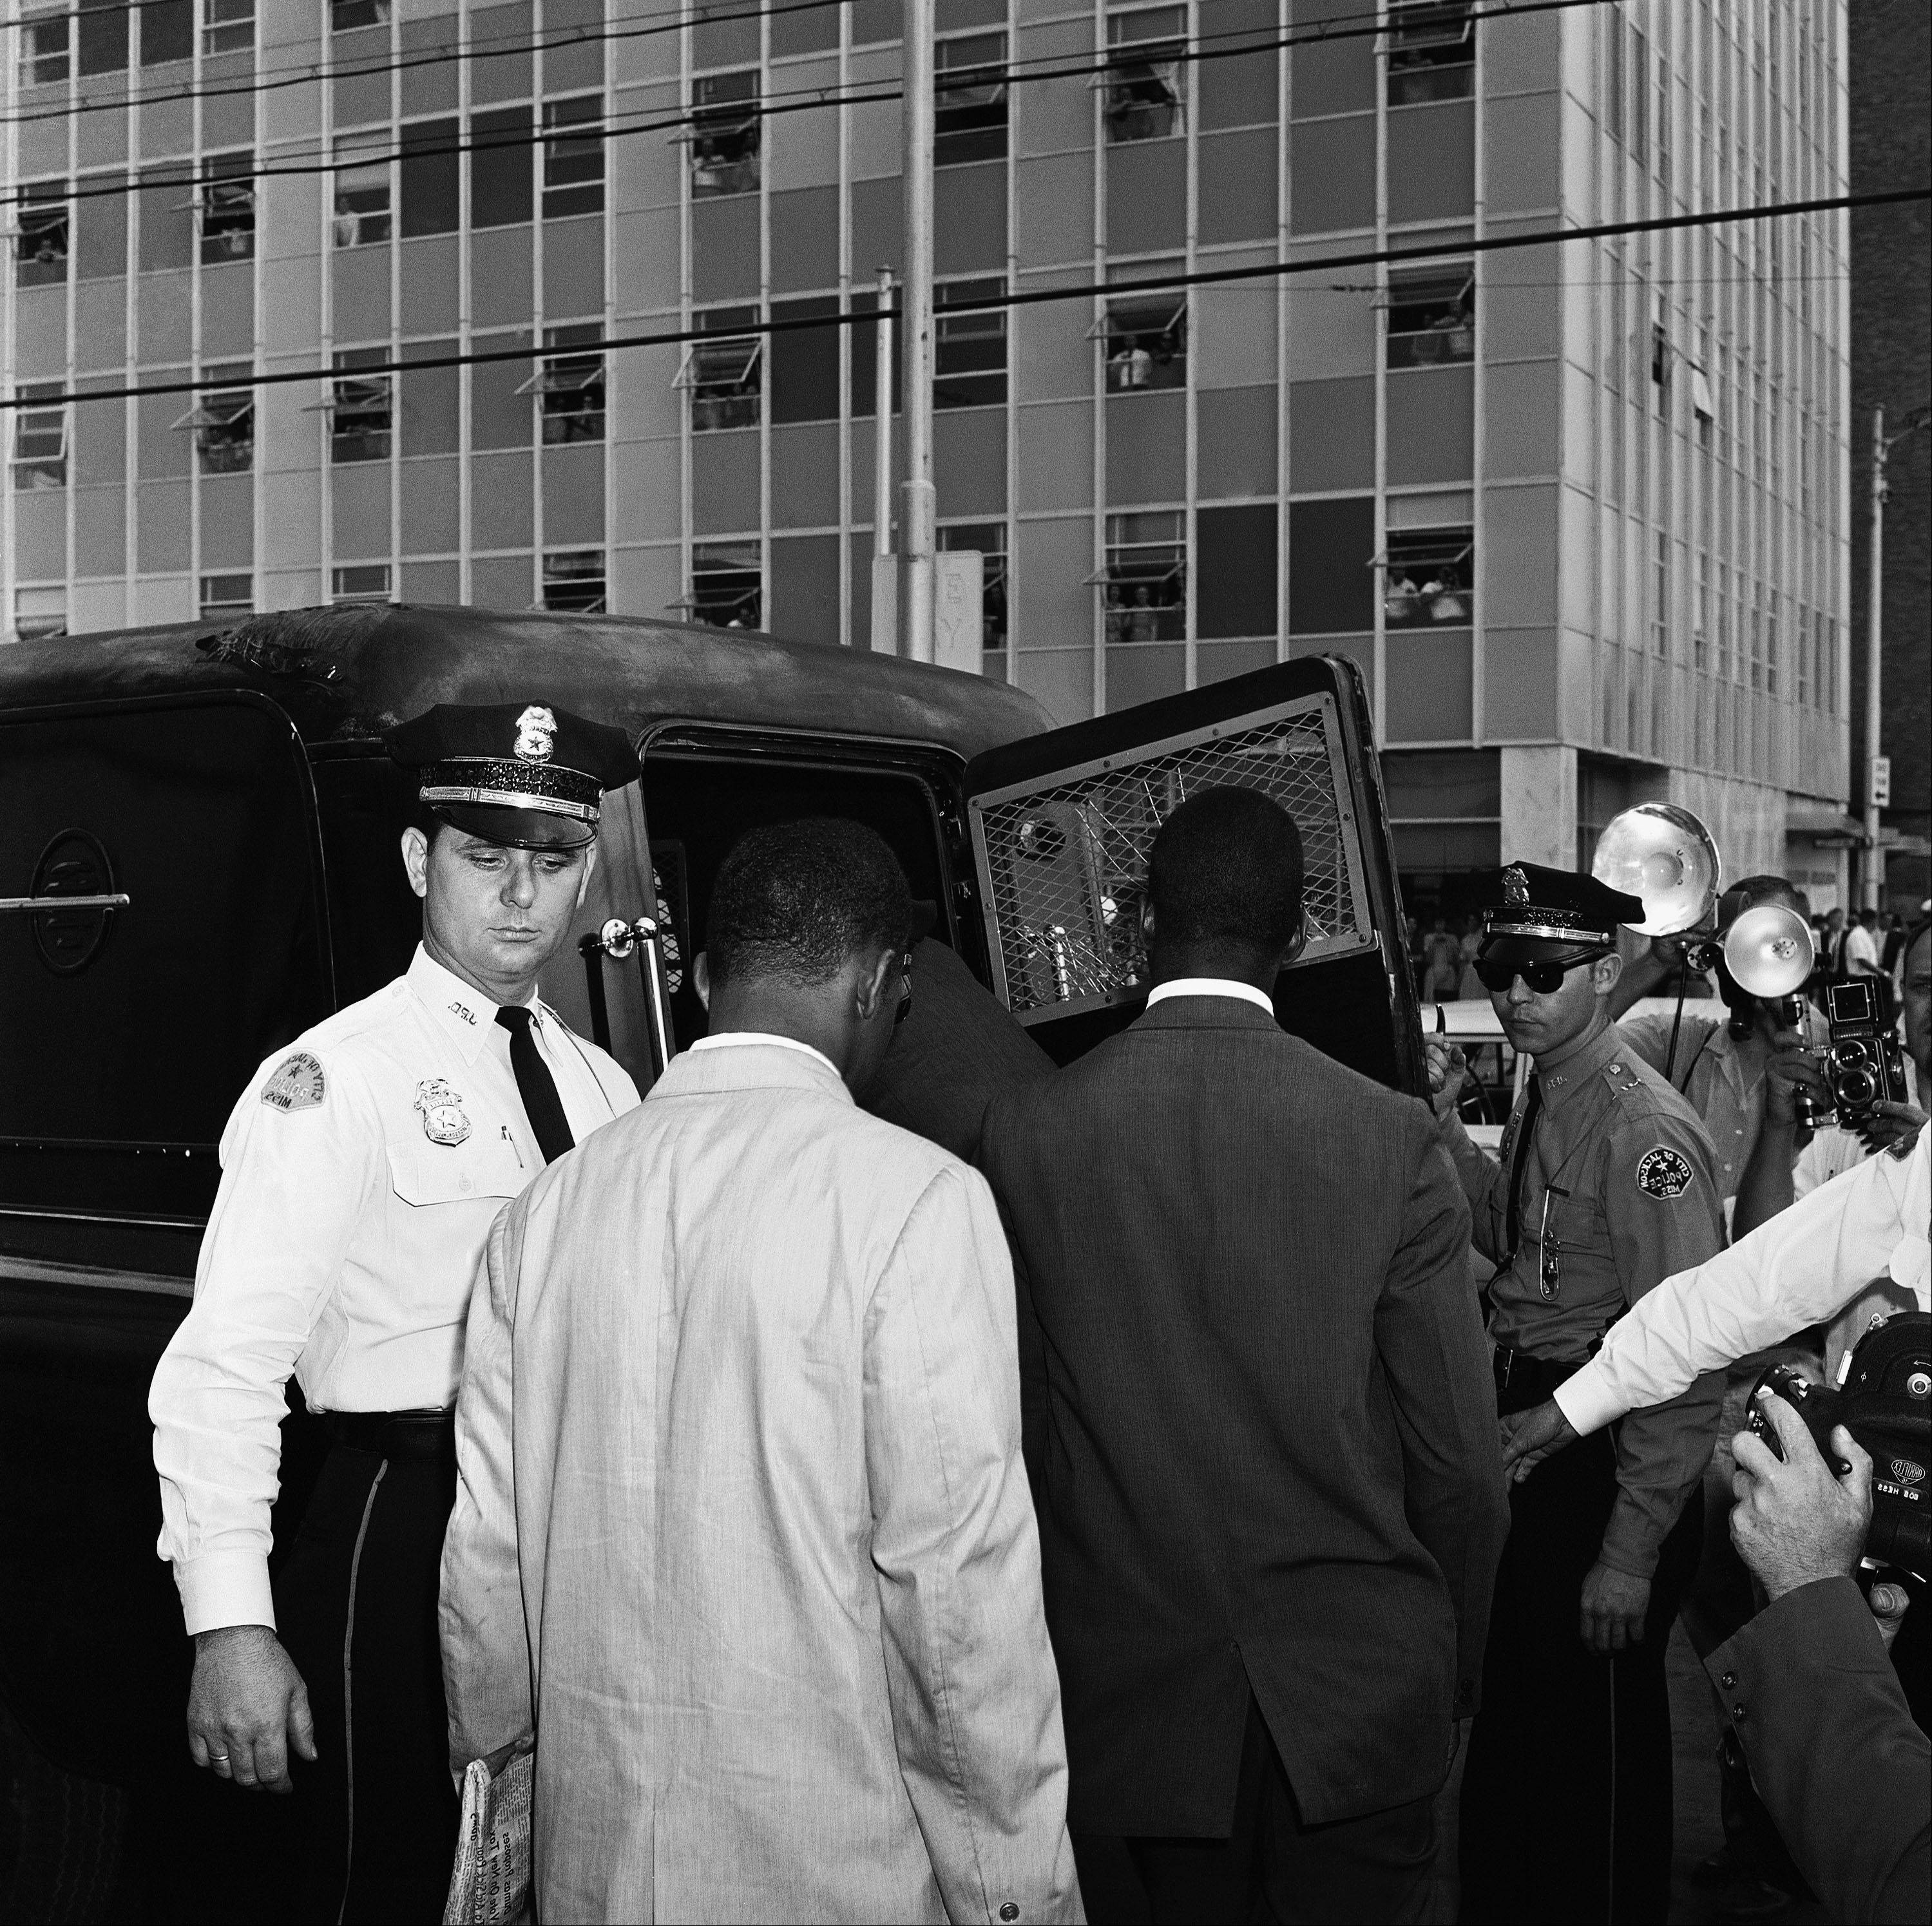 Police arrested Freedom Riders arriving in Jackson, Miss., in 1961.